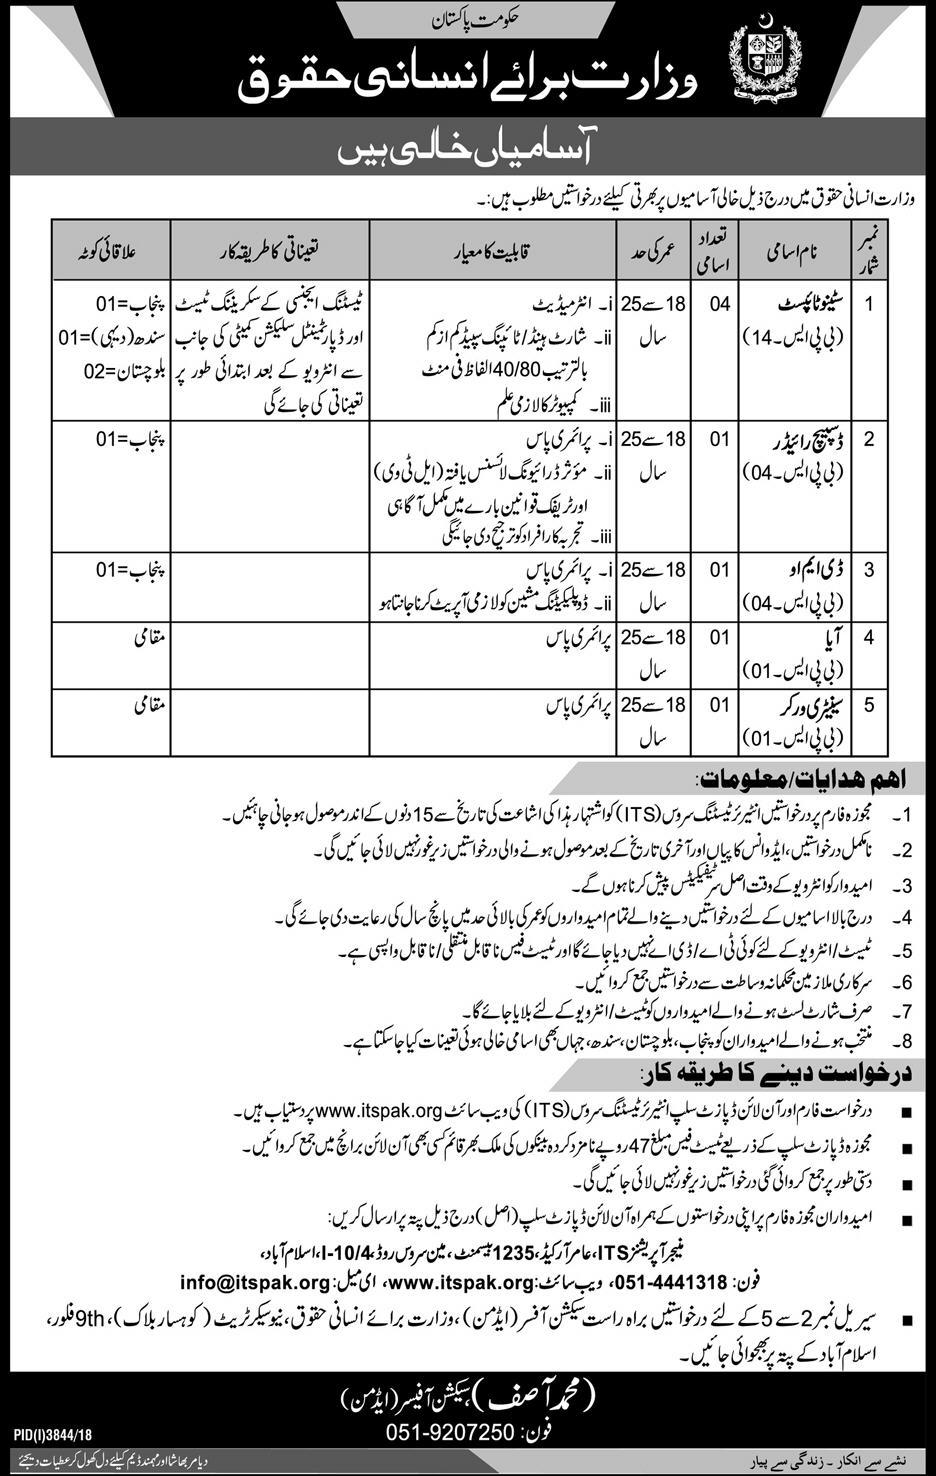 ITS Jobs 2019 Application Form | Ministry of Human Rights Govt of Pakistan